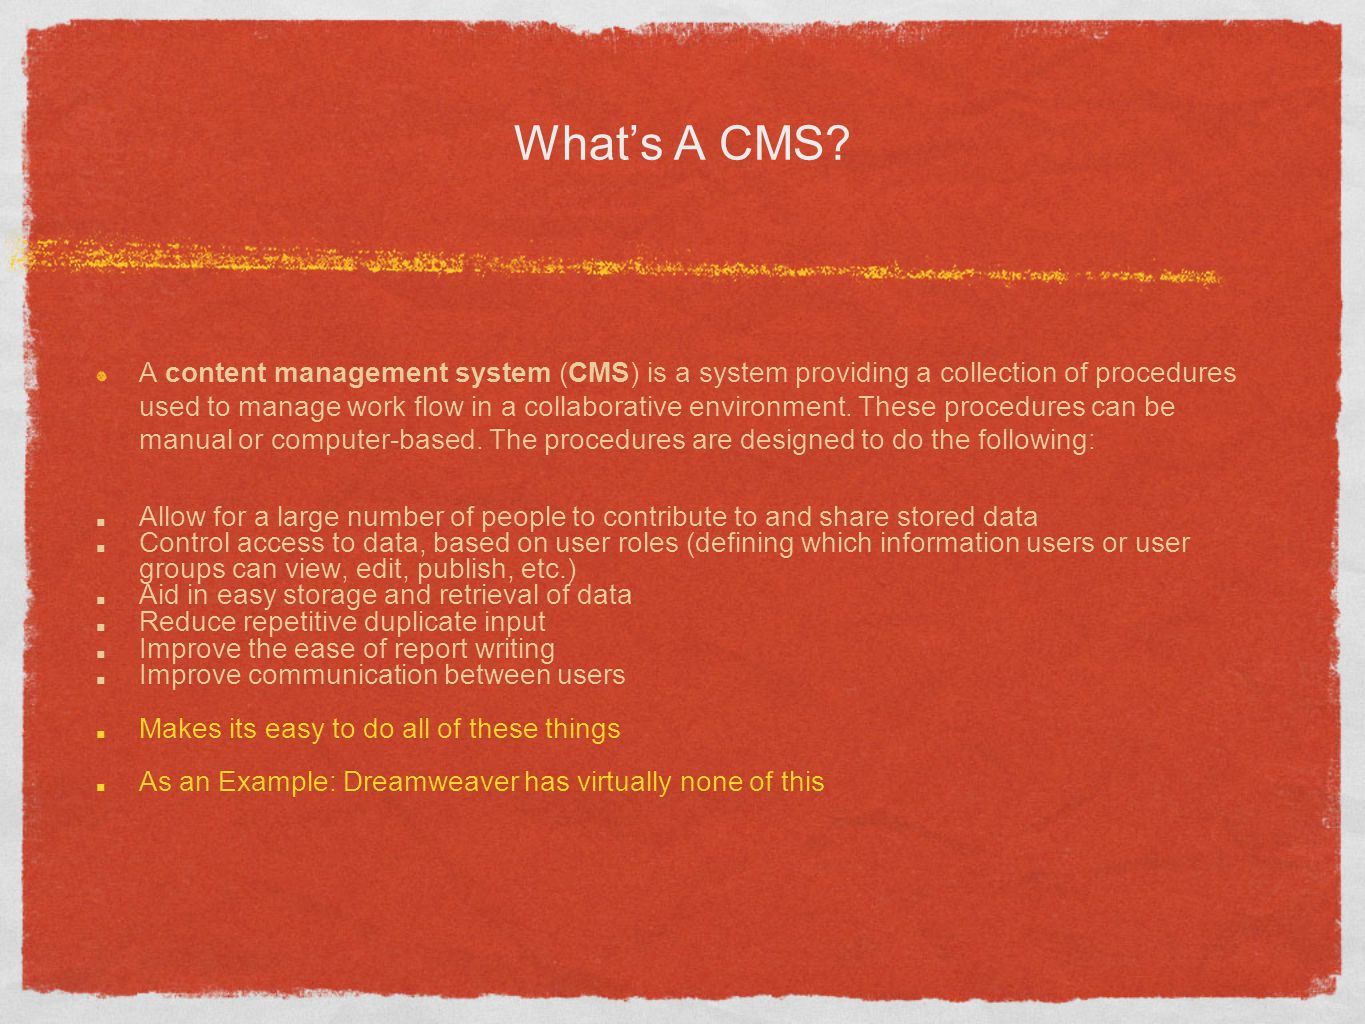 Whats A CMS? A content management system (CMS) is a system providing a collection of procedures used to manage work flow in a collaborative environmen